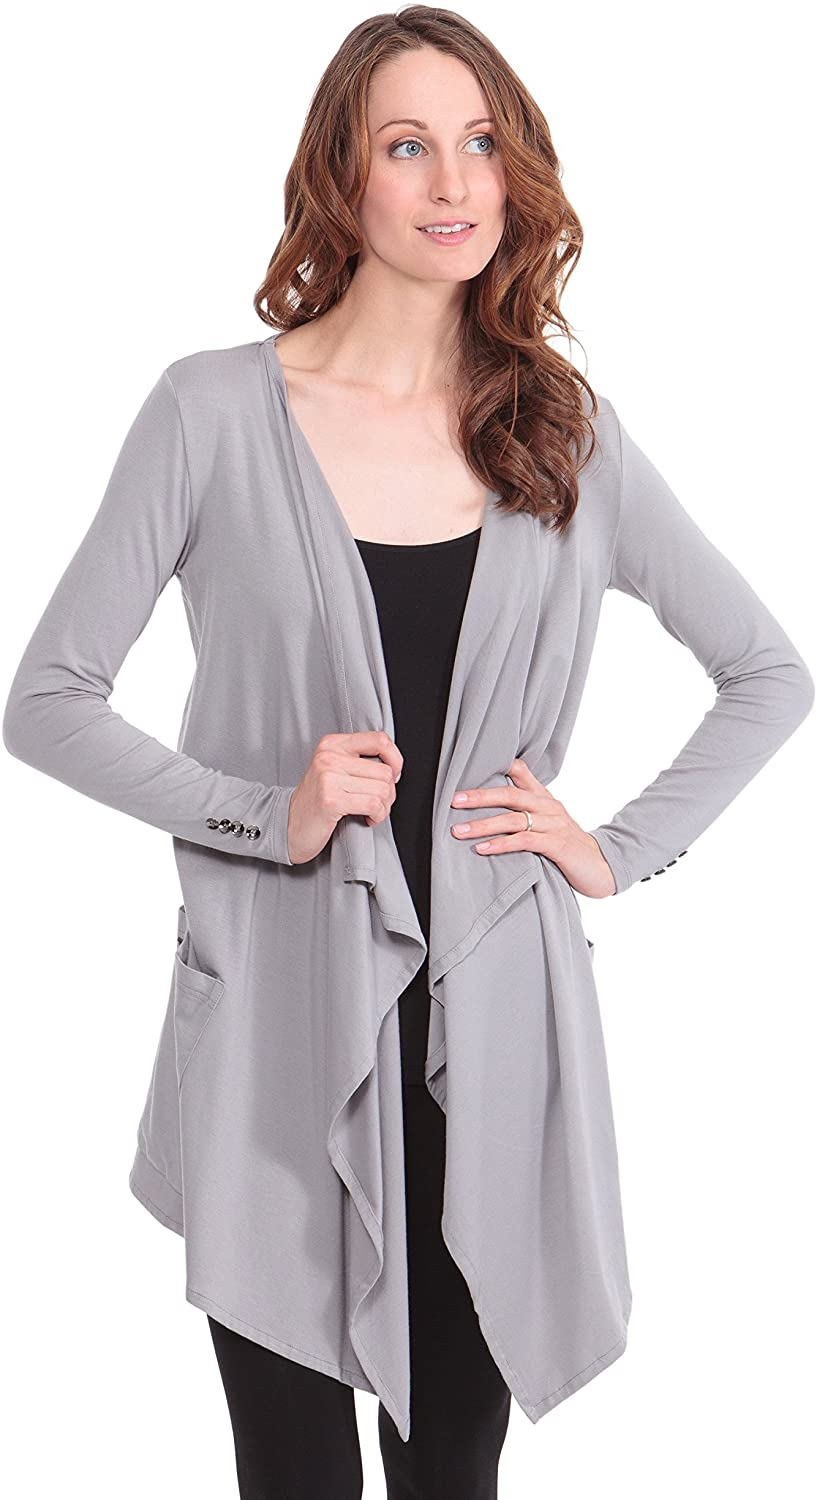 Women's Long Sleeve Draped Cardigan - Stylish Apparel by Texere (Caireen)